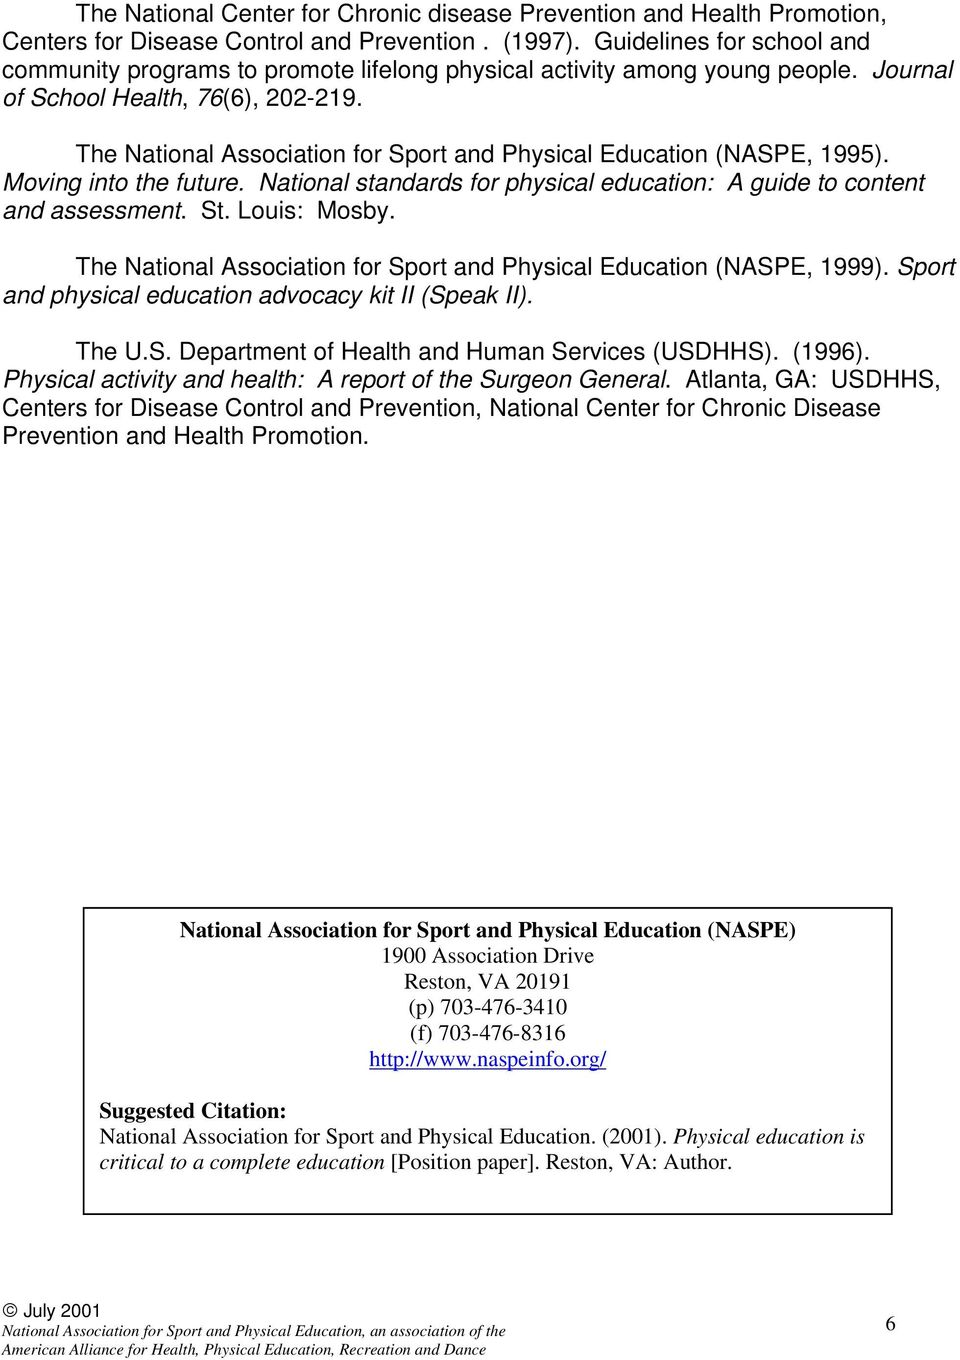 The National Association for Sport and Physical Education (NASPE, 1995). Moving into the future. National standards for physical education: A guide to content and assessment. St. Louis: Mosby.